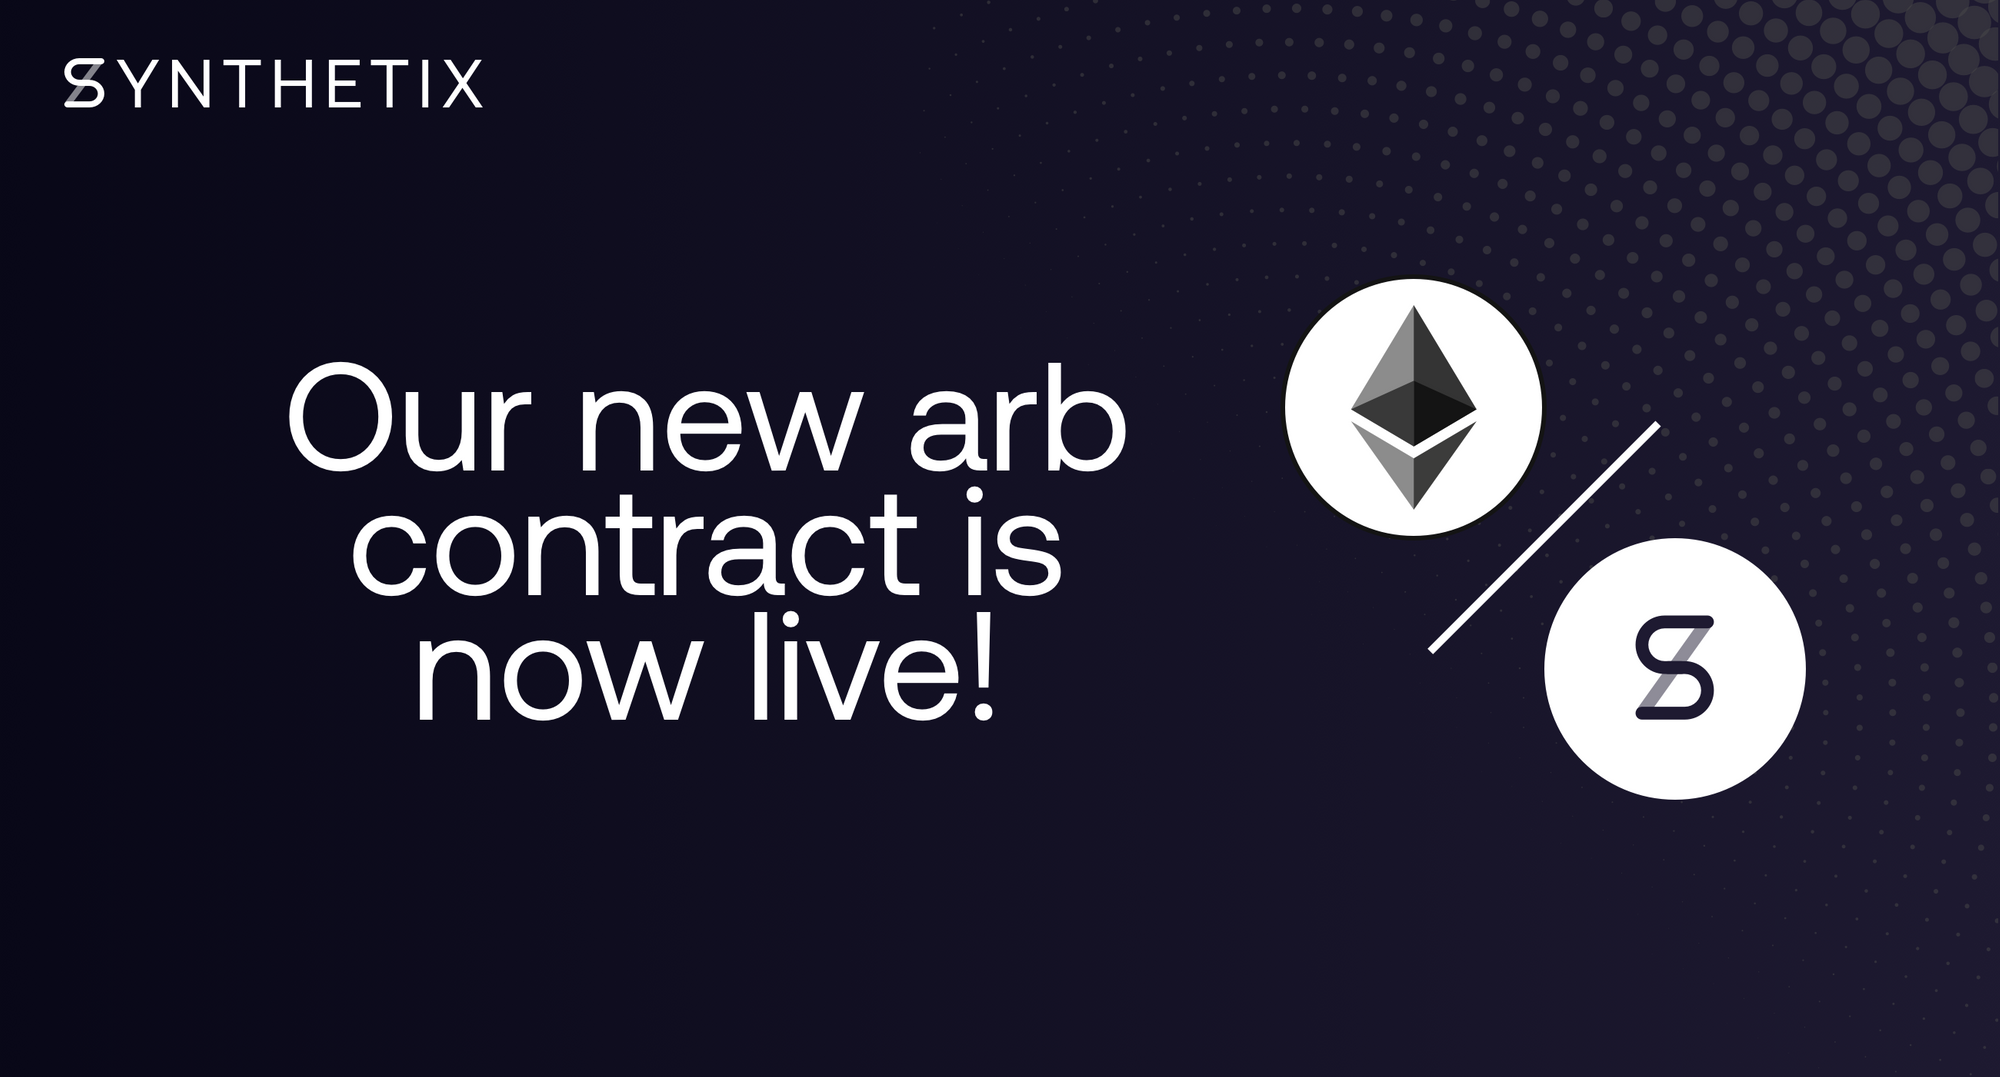 Our new ETH-SNX arb contract is now live!